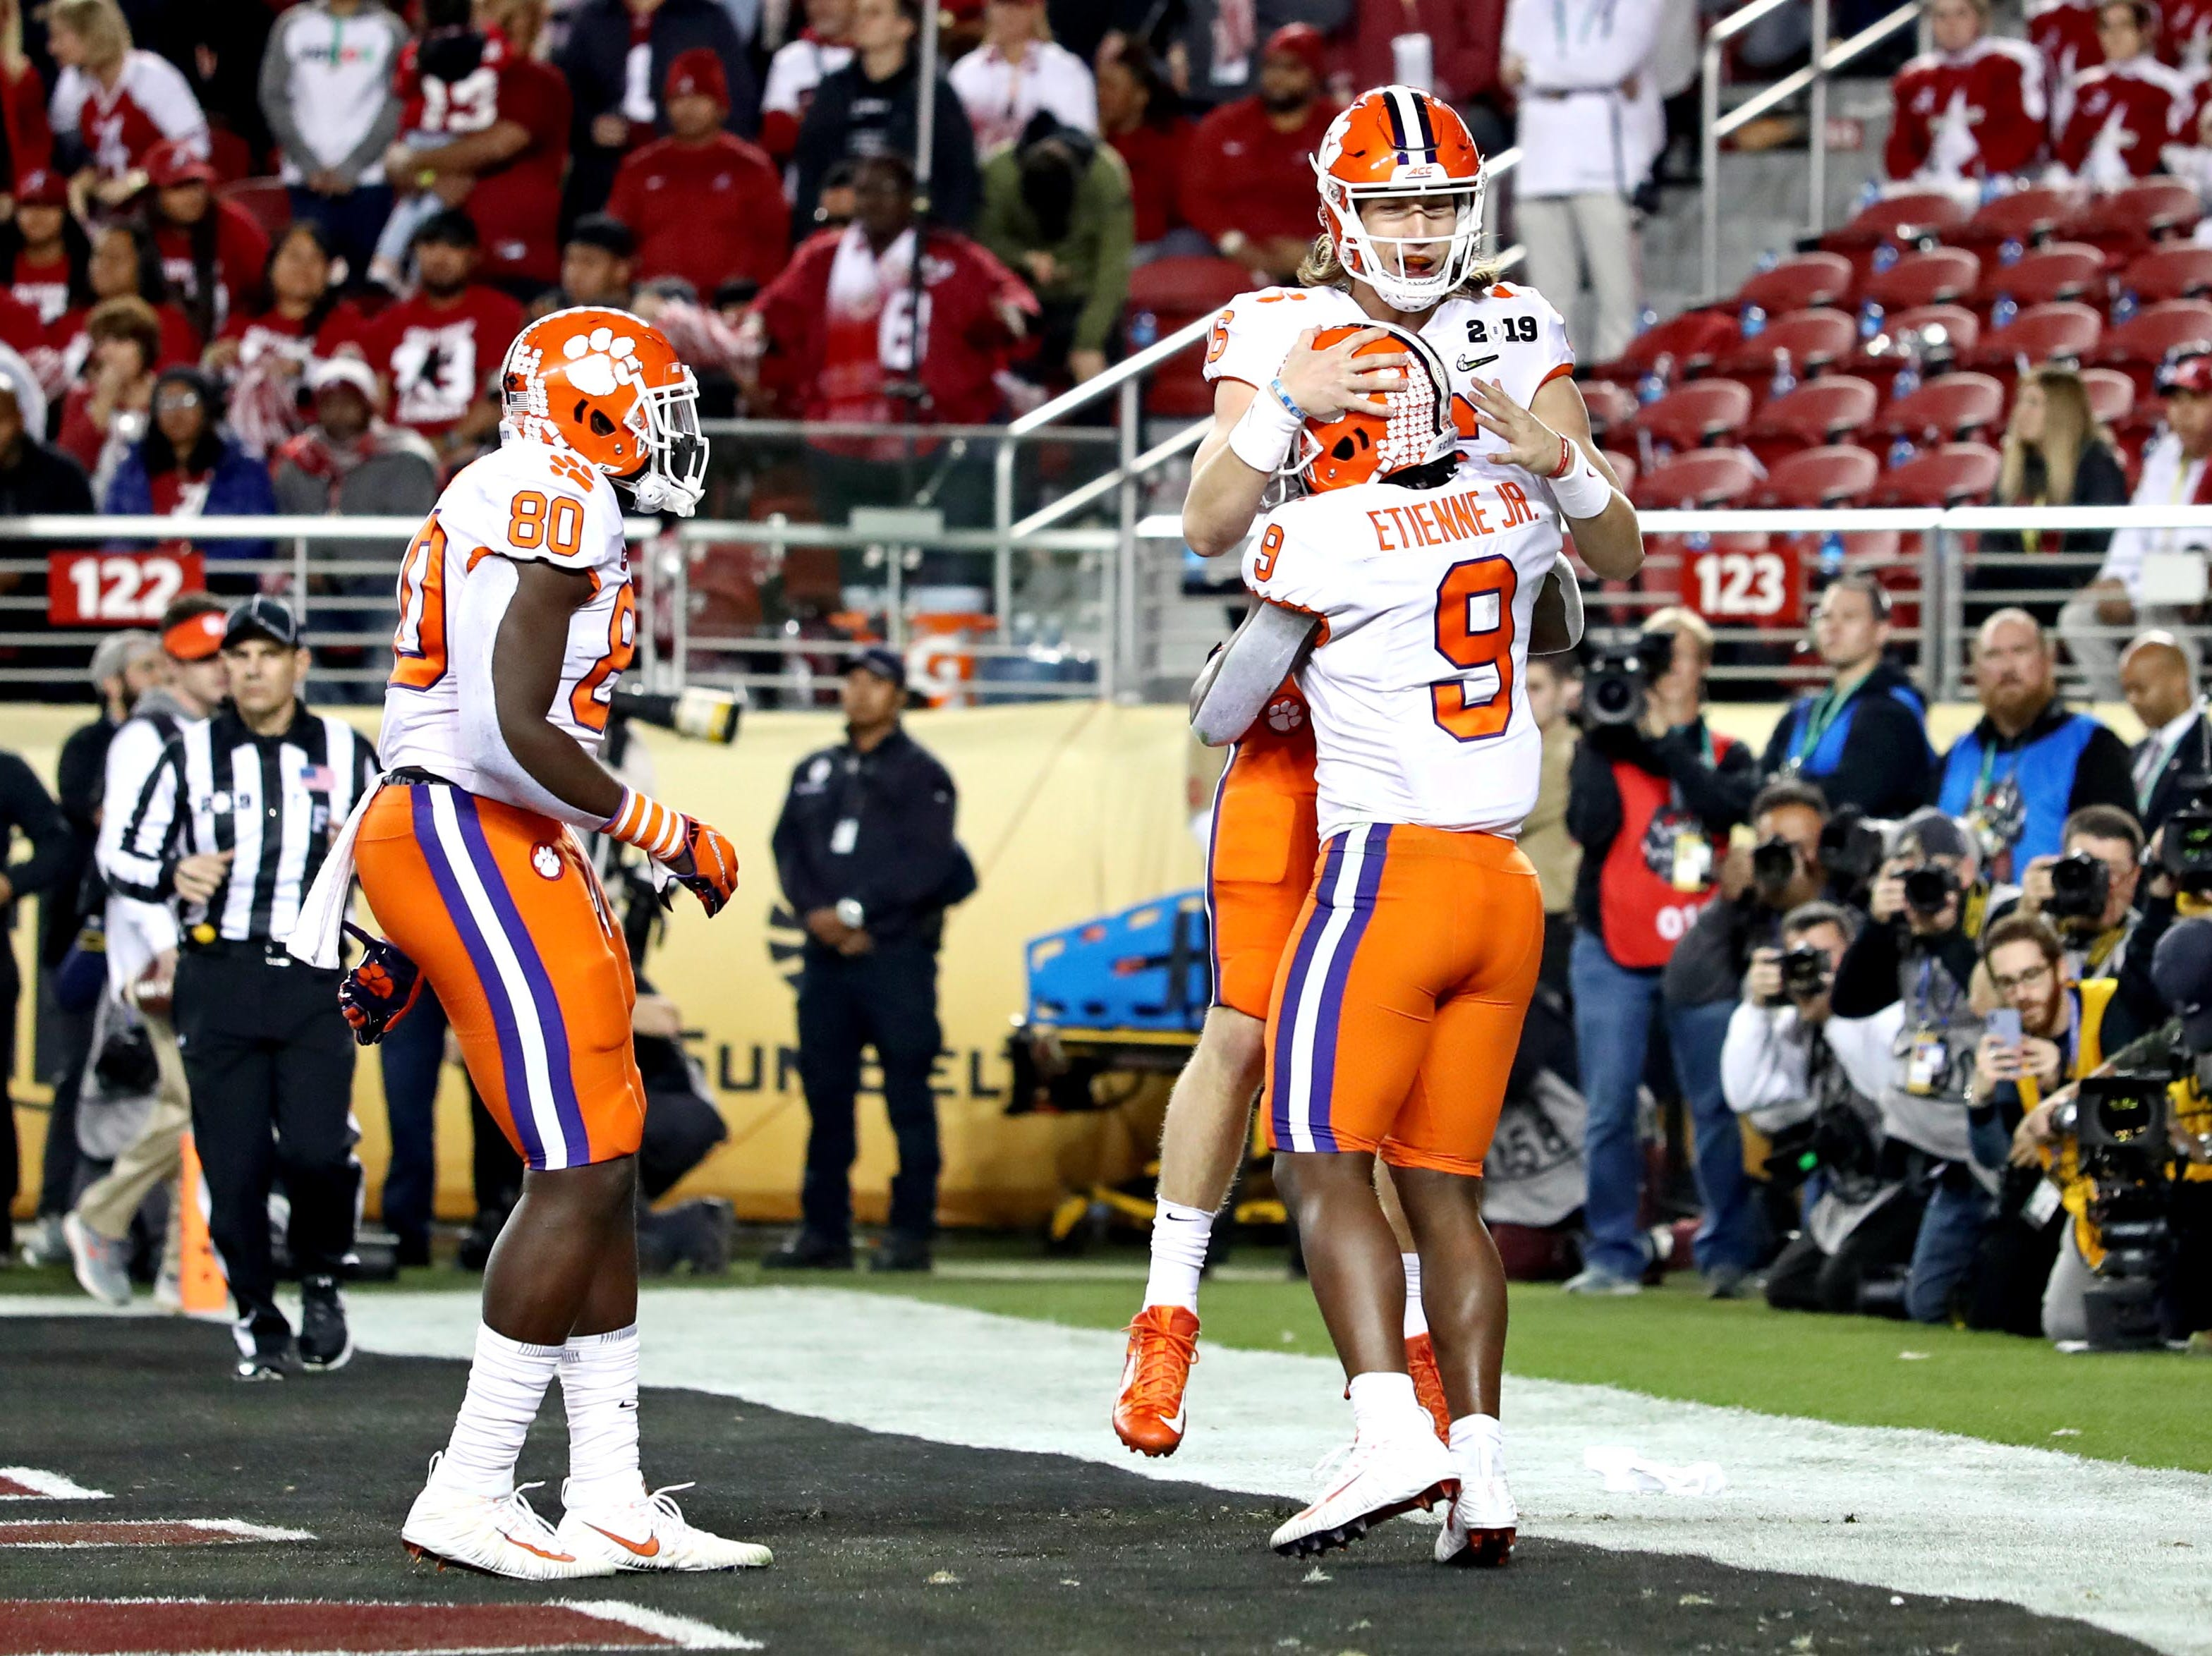 Jan 7, 2019; Santa Clara, CA, USA; Clemson Tigers running back Travis Etienne (9) celebrates with Clemson Tigers quarterback Trevor Lawrence (16) after a touchdown during the first half against the Alabama Crimson Tide during the 2019 College Football Playoff Championship game at Levi's Stadium. Mandatory Credit: Matthew Emmons-USA TODAY Sports